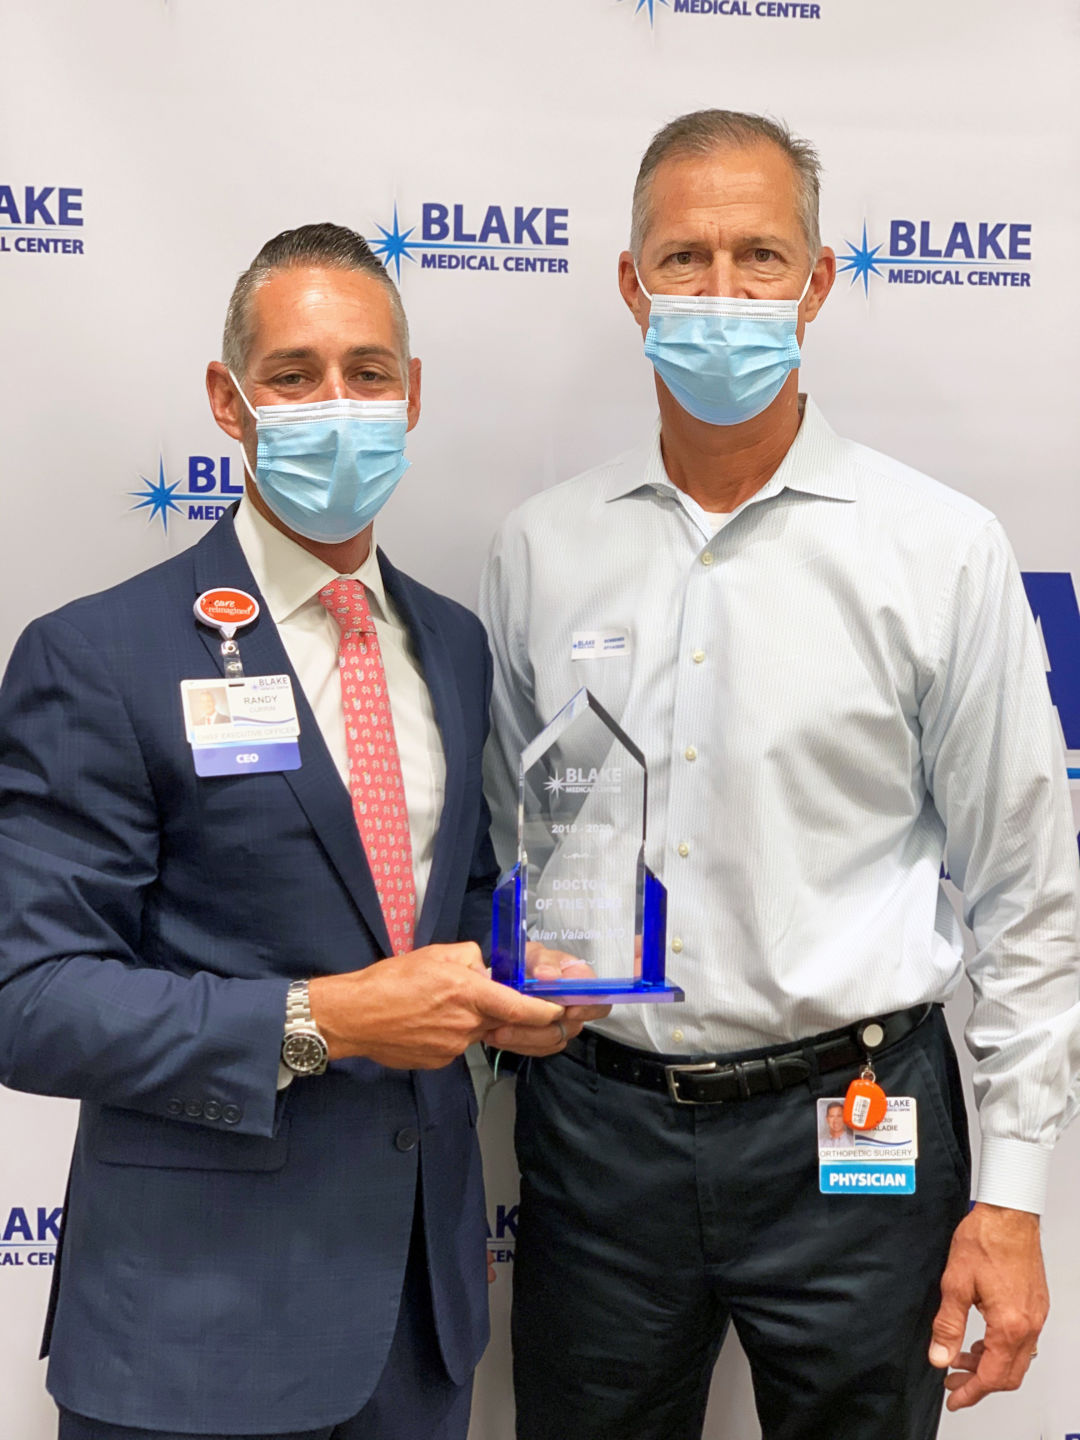 Randy Currin, president and chief executive officer of Blake Medical Center, presenting the award to Dr. Alan Valadie, joint replacement specialist and orthopedic surgeon with Coastal Orthopedics